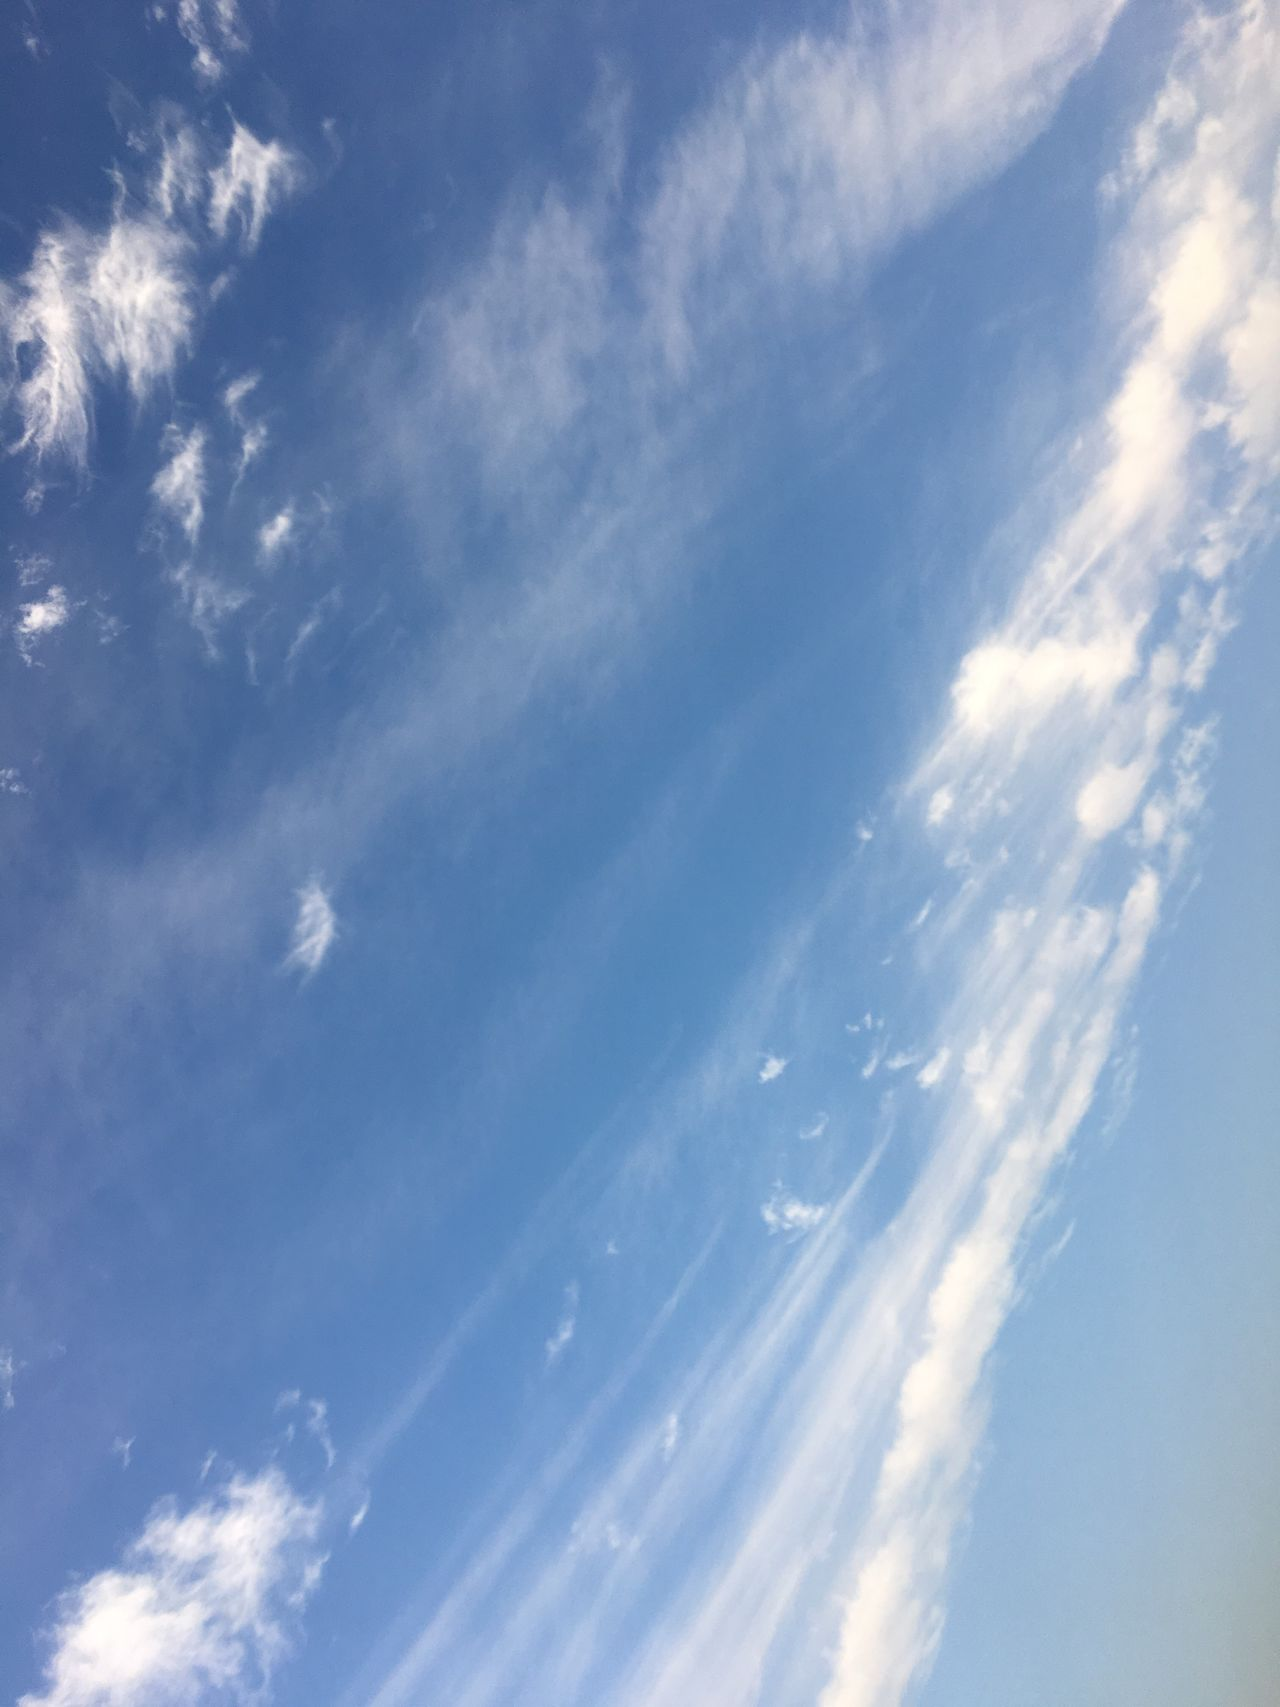 Sky Cloud - Sky Blue Low Angle View Nature No People Cirrus Day Beauty In Nature Outdoors Morning Sun Morning Sky Morning Light Morning Beauty In Nature Nature Kuwait City Kuwait❤ Clouds And Sky Sky_collection Sky And Clouds Backgrounds Tree